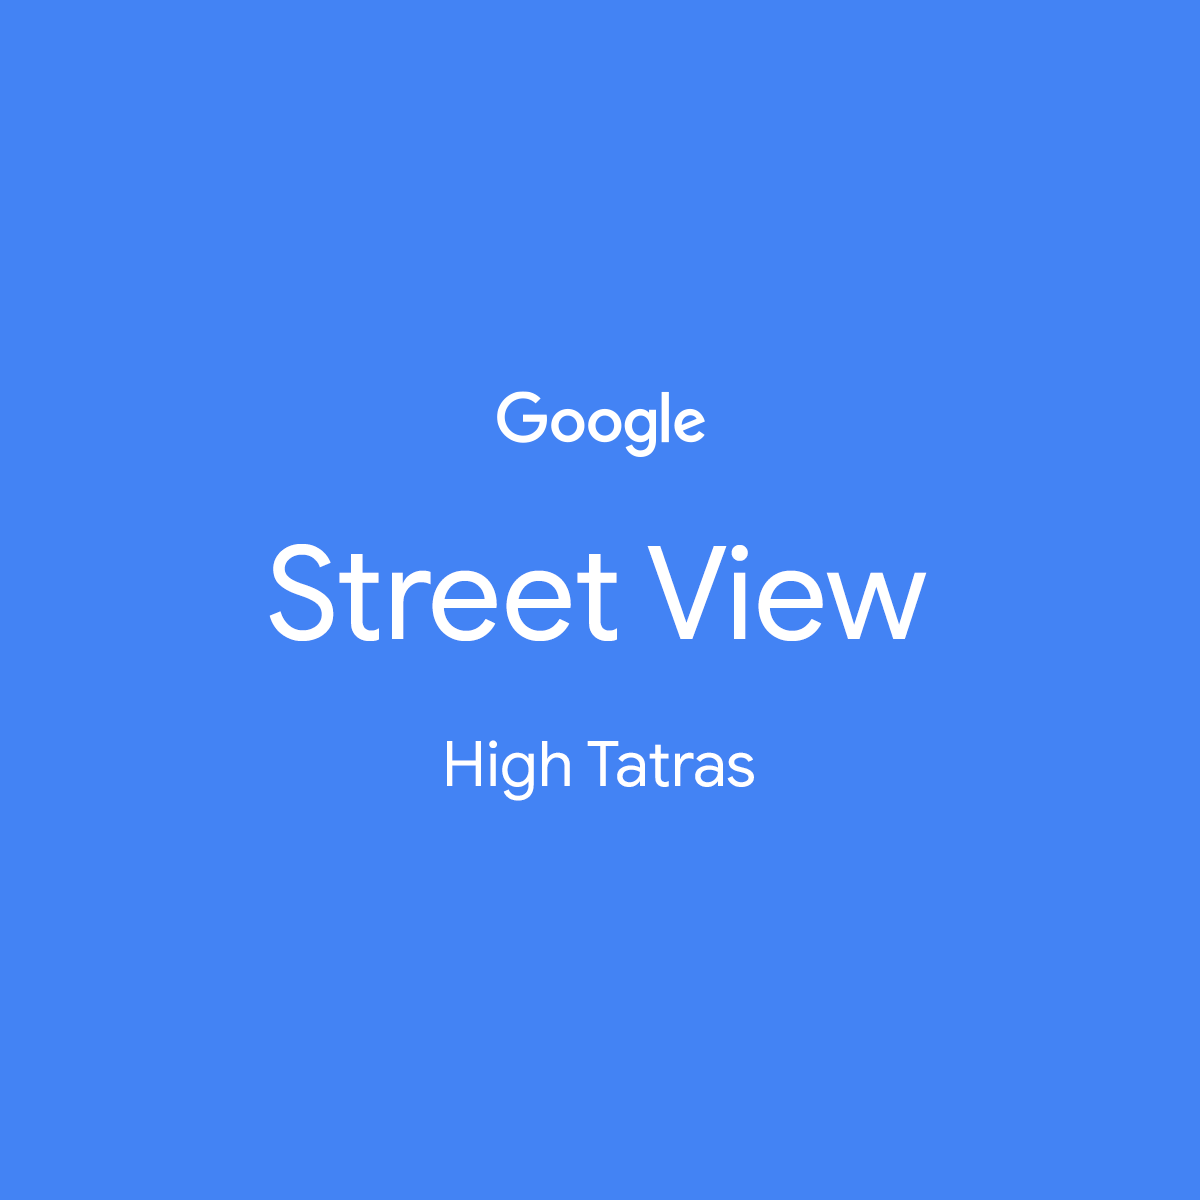 Google Streetview – High Tatras